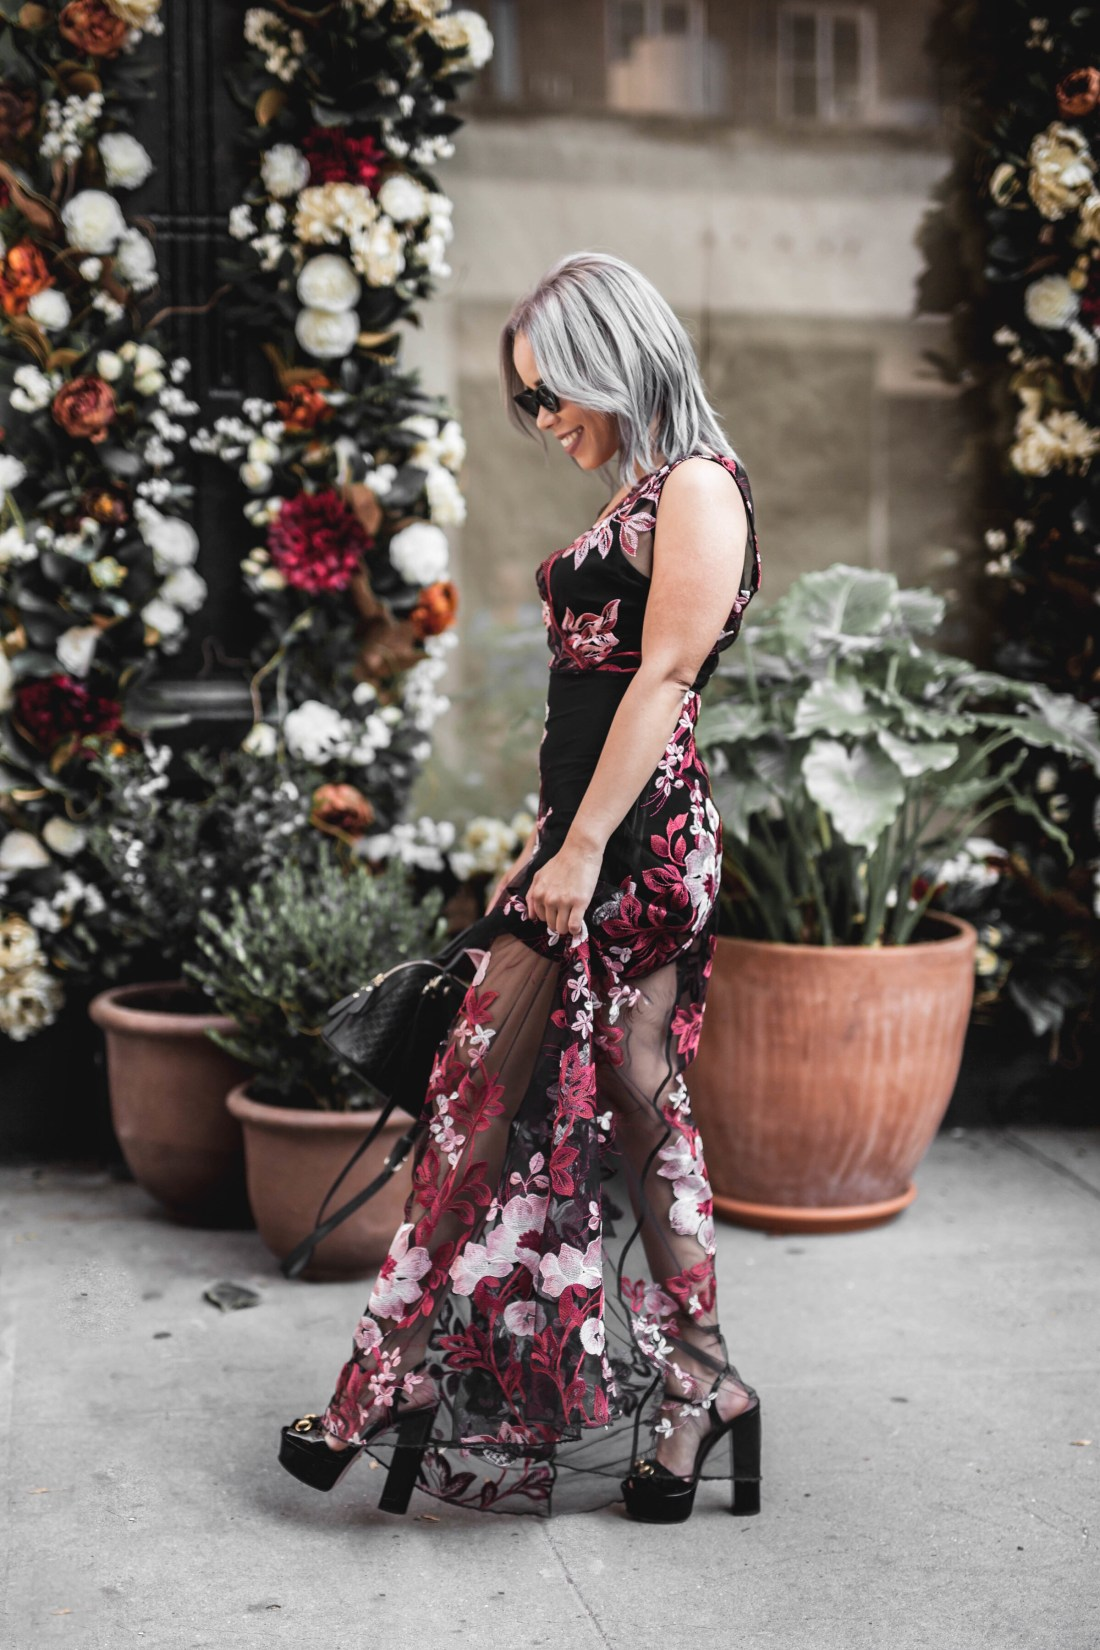 A girl wearing a long floral dress for a fashion street style shoot